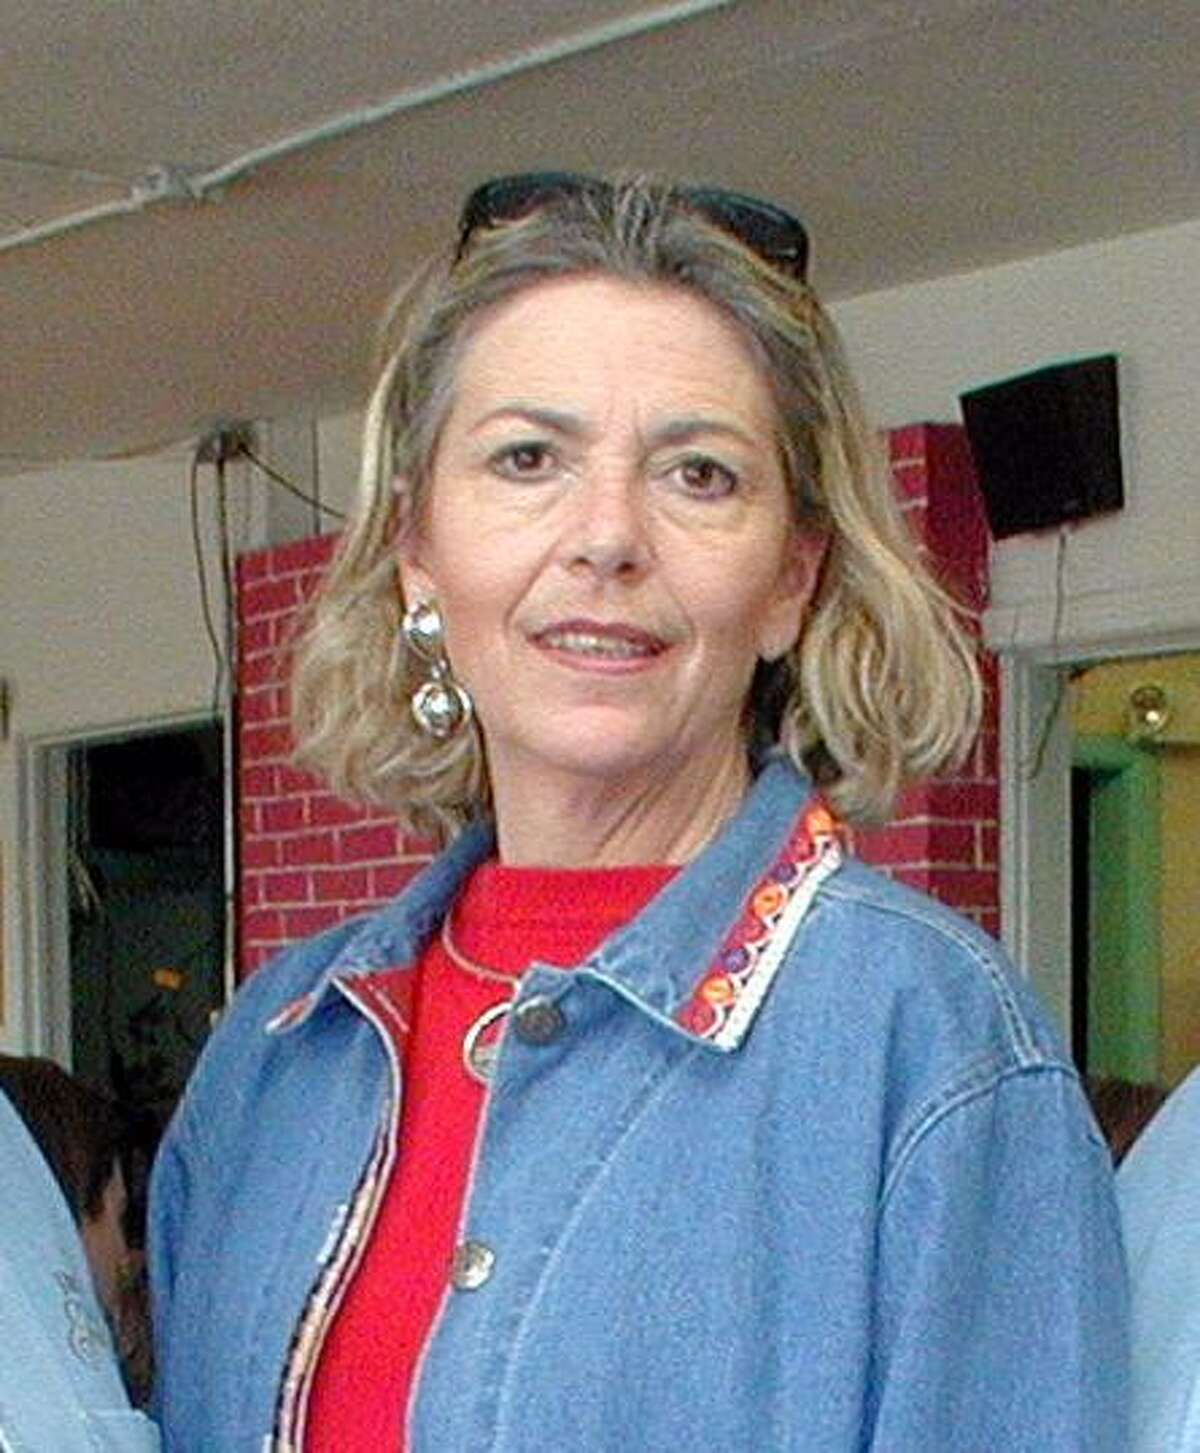 Susan Chandoha was executive director of Los Compadres de San Antonio Missions for nearly 30 years. She died in January.